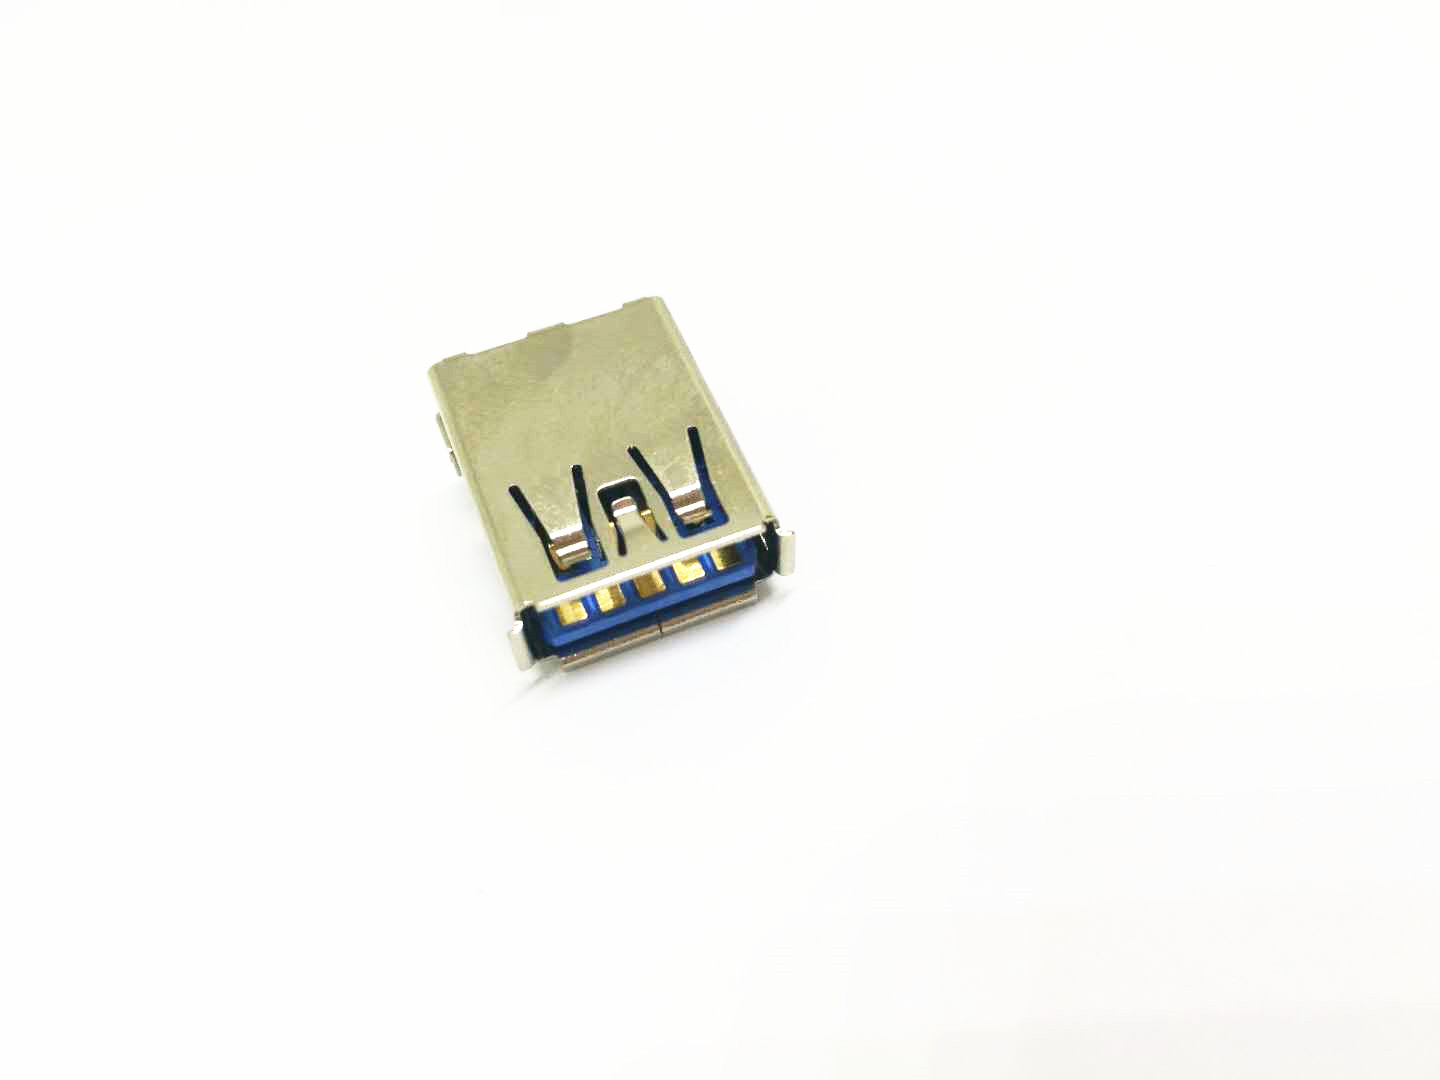 USB 3.0 A type right angle reverse  mount